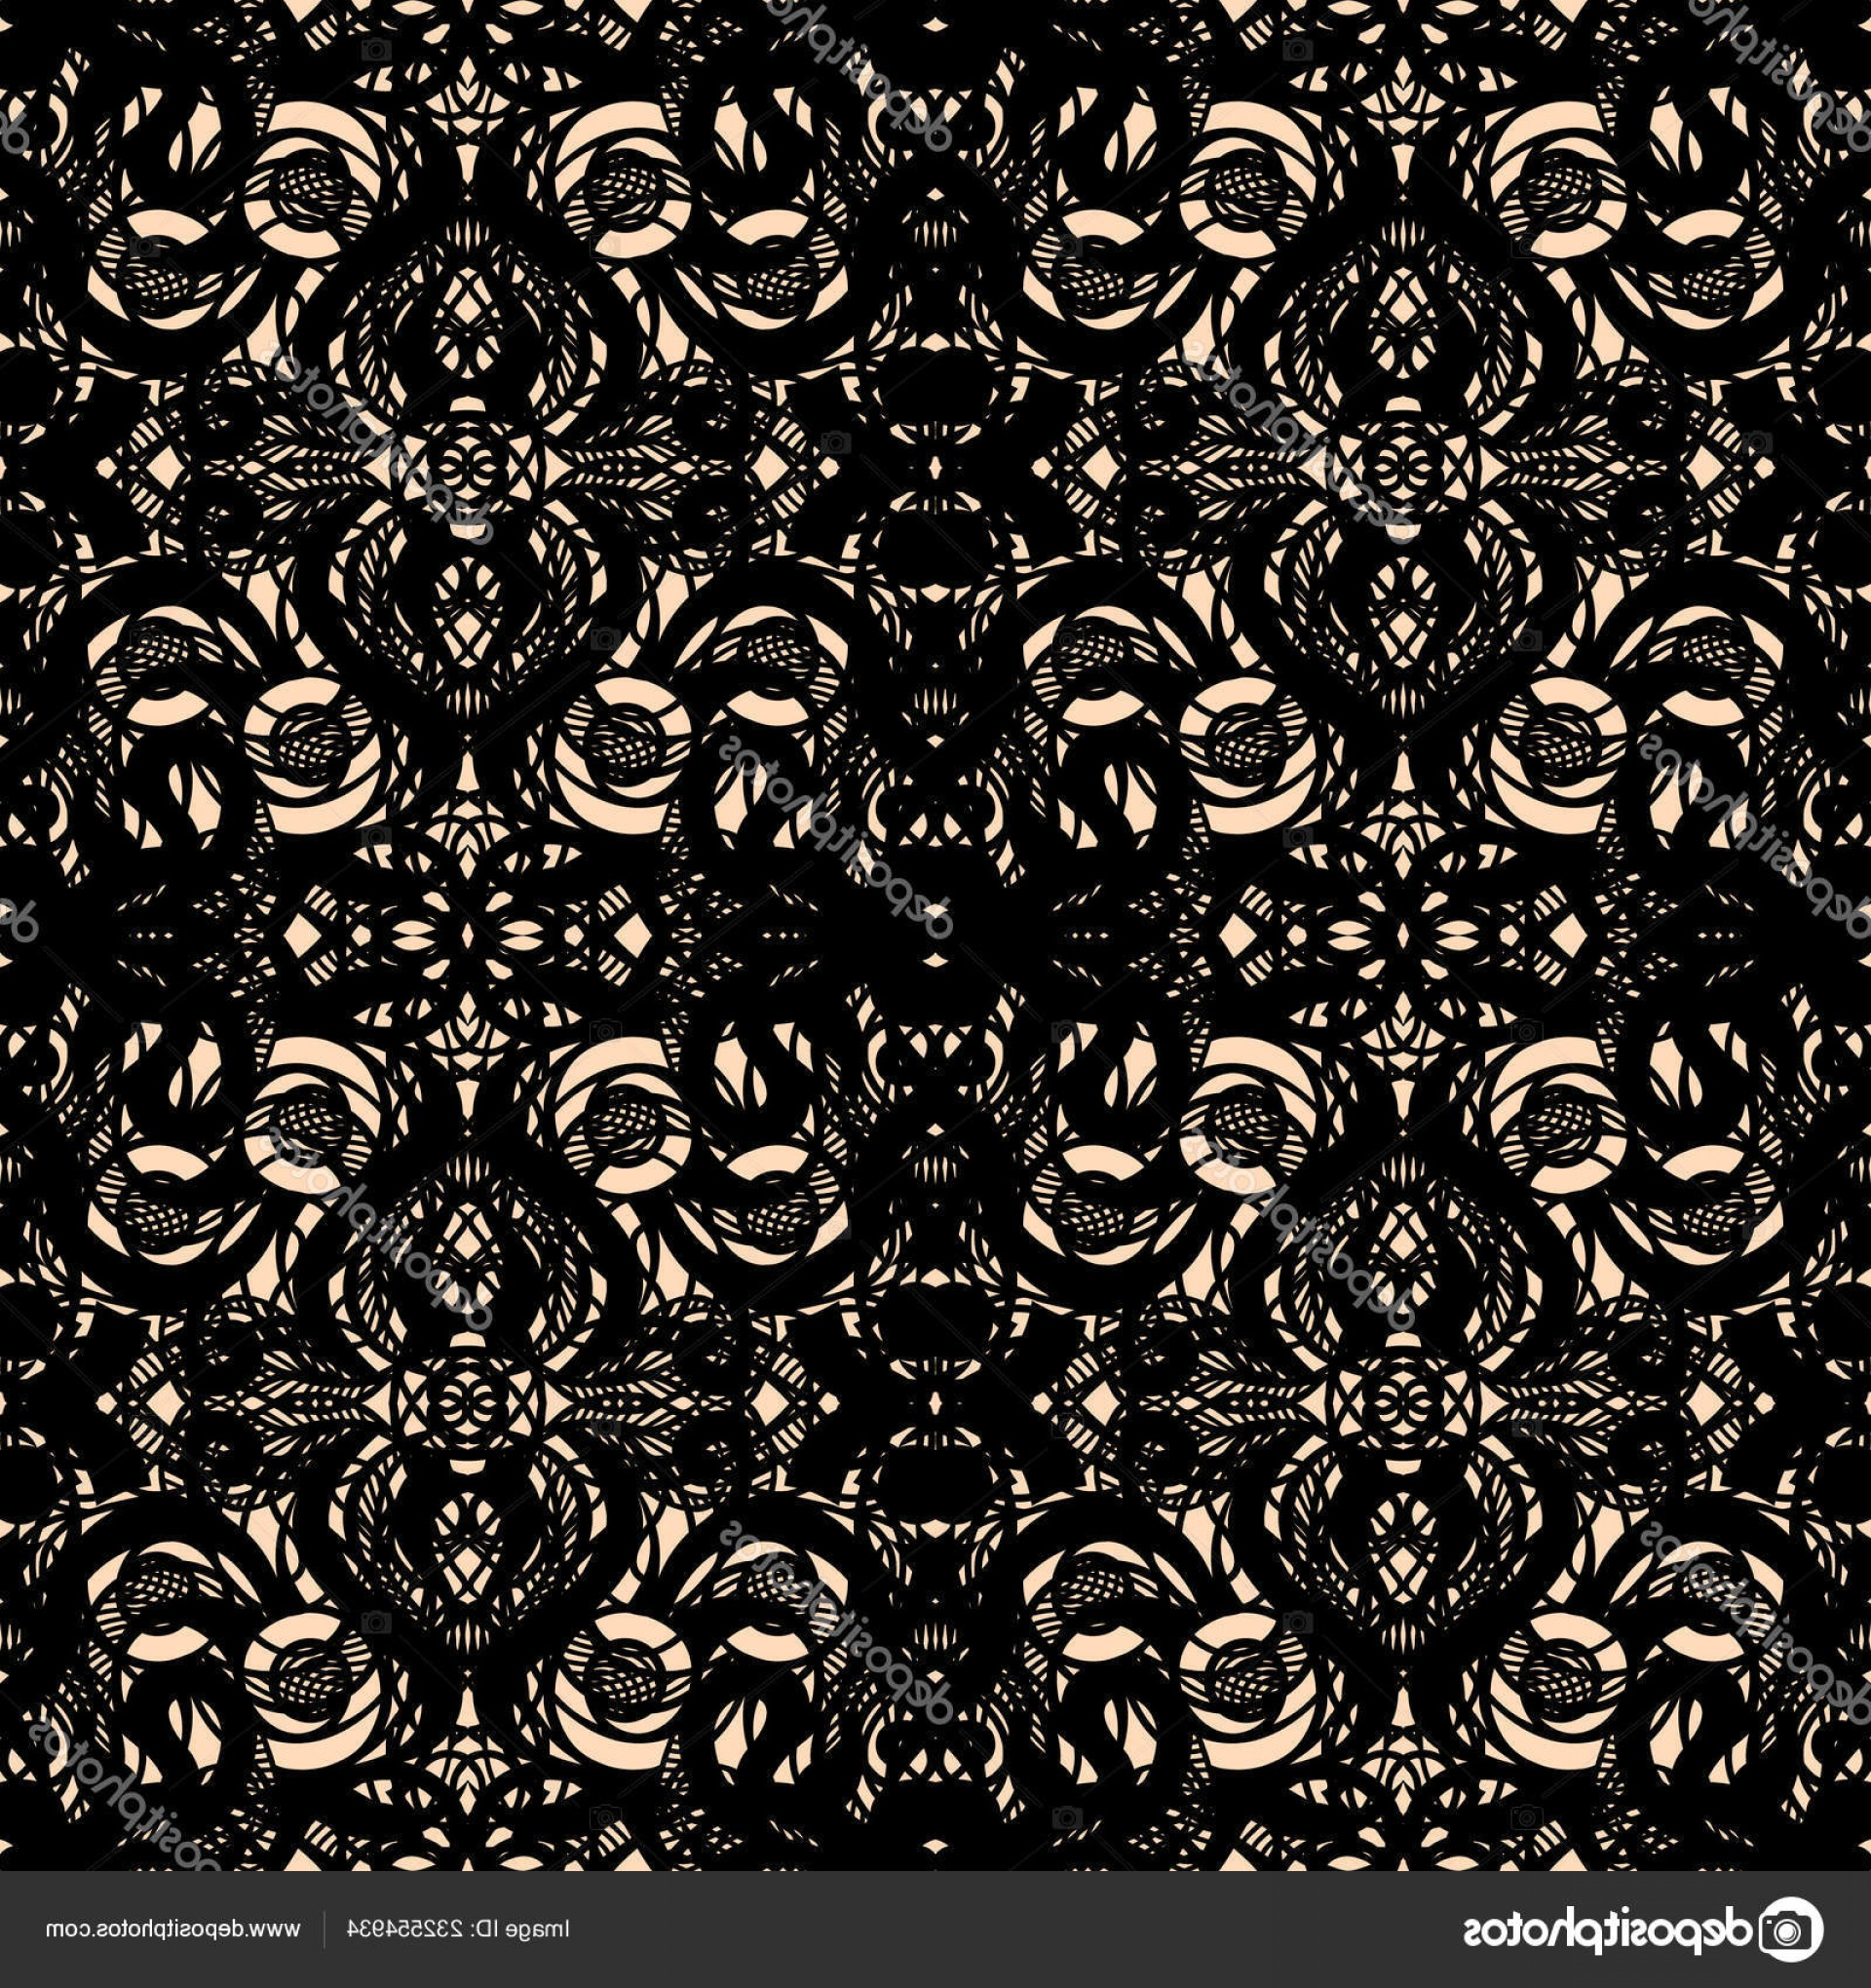 Tulle Black Lace Pattern Vector: Stock Illustration Seamless Abstract Openwork Pattern Black